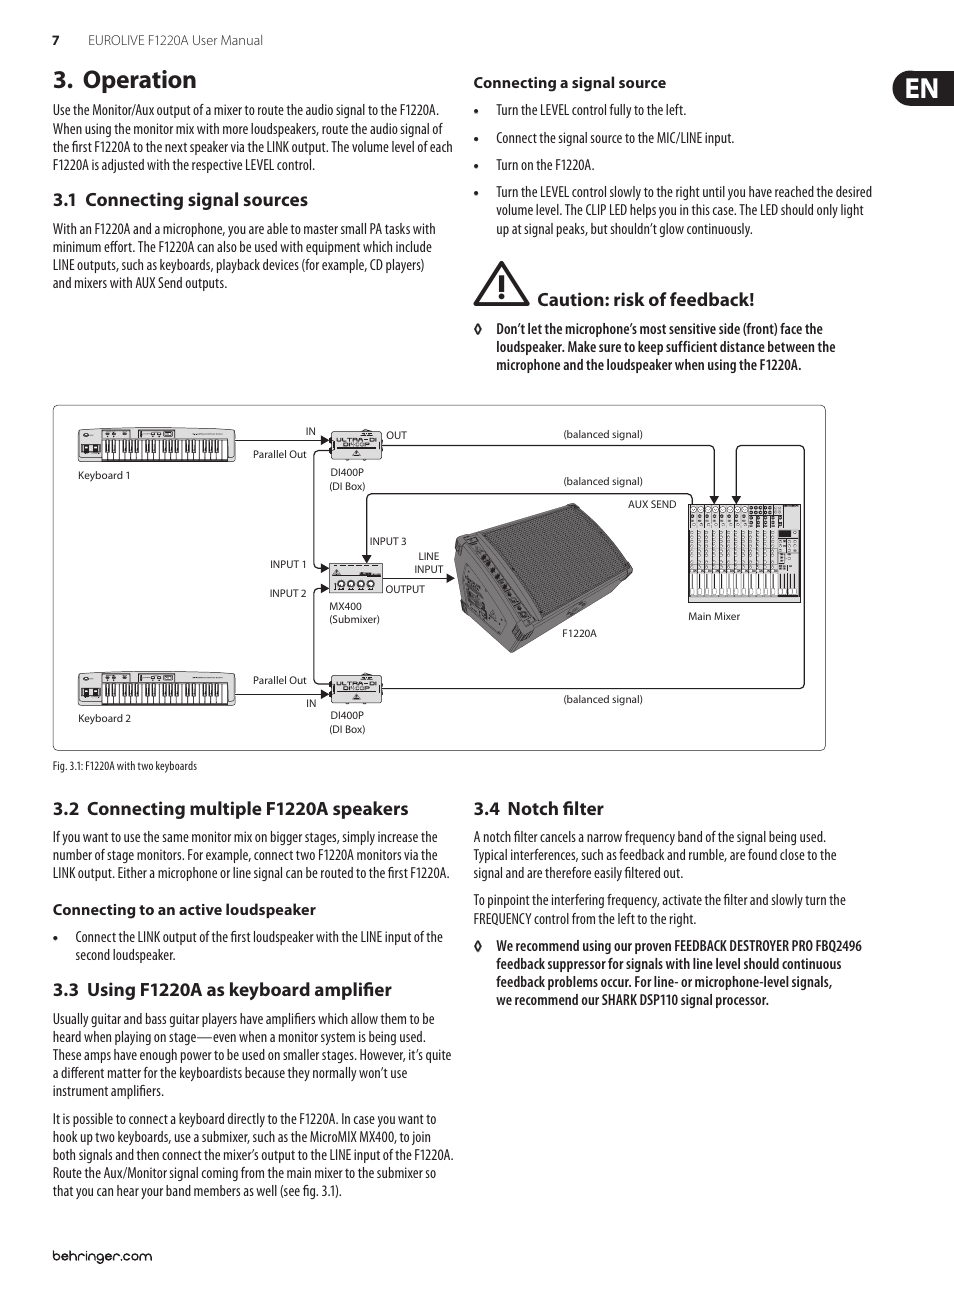 hight resolution of operation 1 connecting signal sources 2 connecting multiple f1220a speakers behringer eurolive f1220a user manual page 7 10